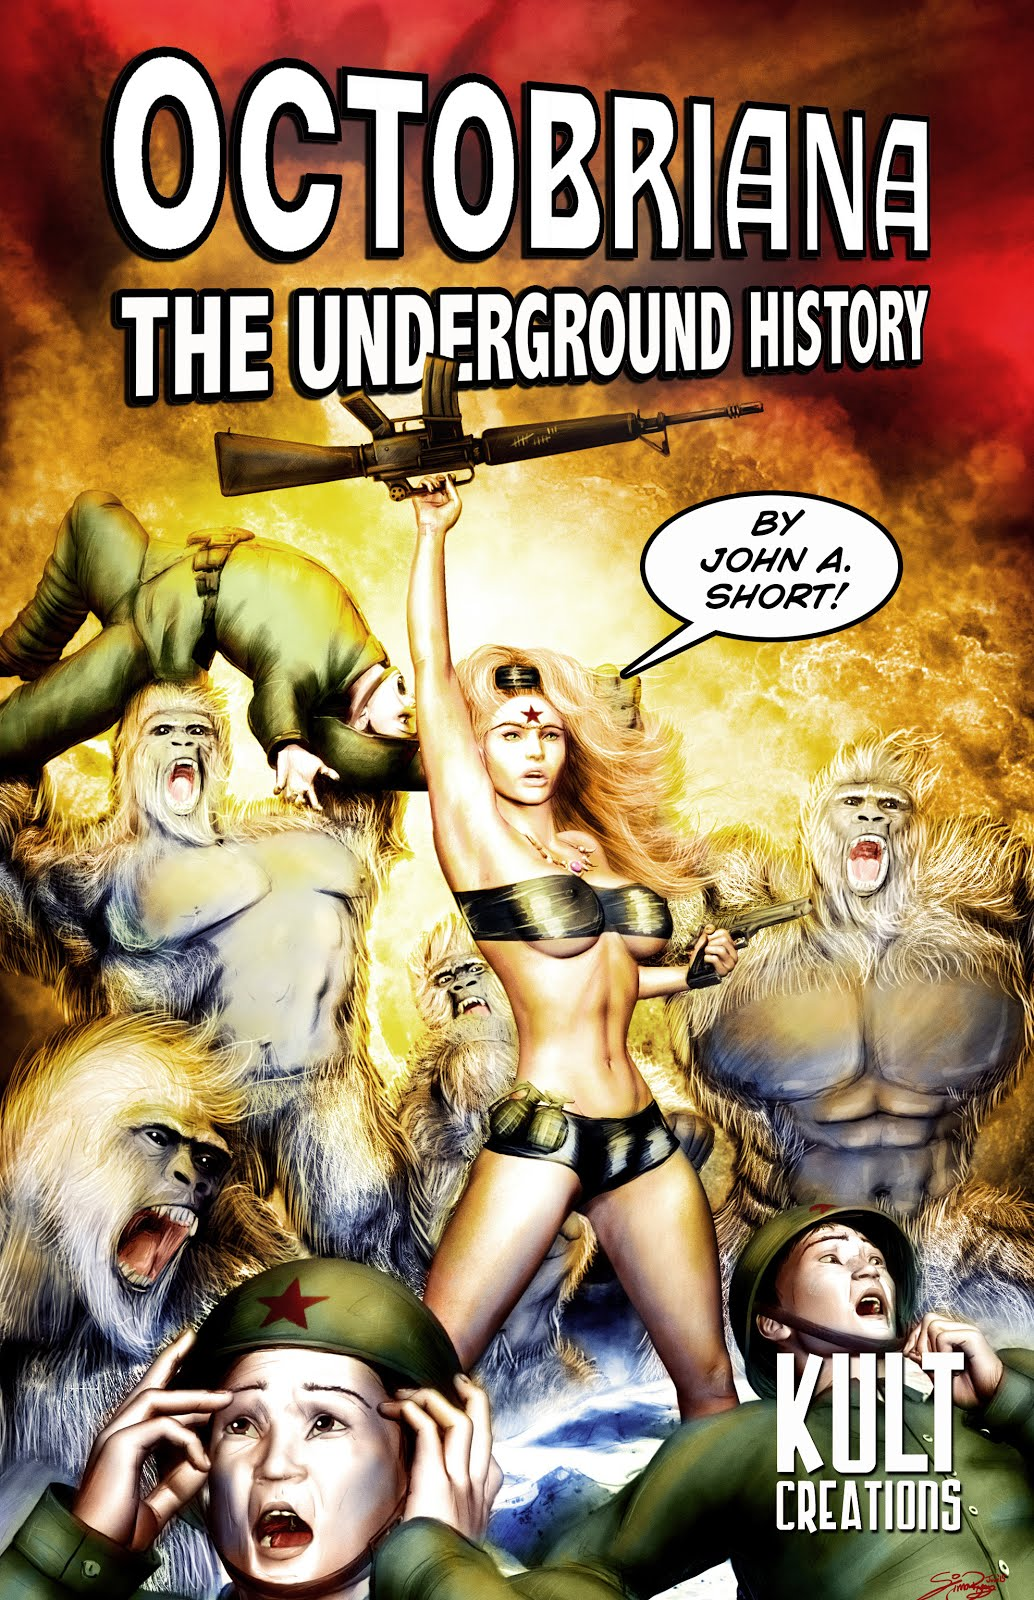 Buy OCTOBRIANA THE UNDERGROUND HISTORY below!